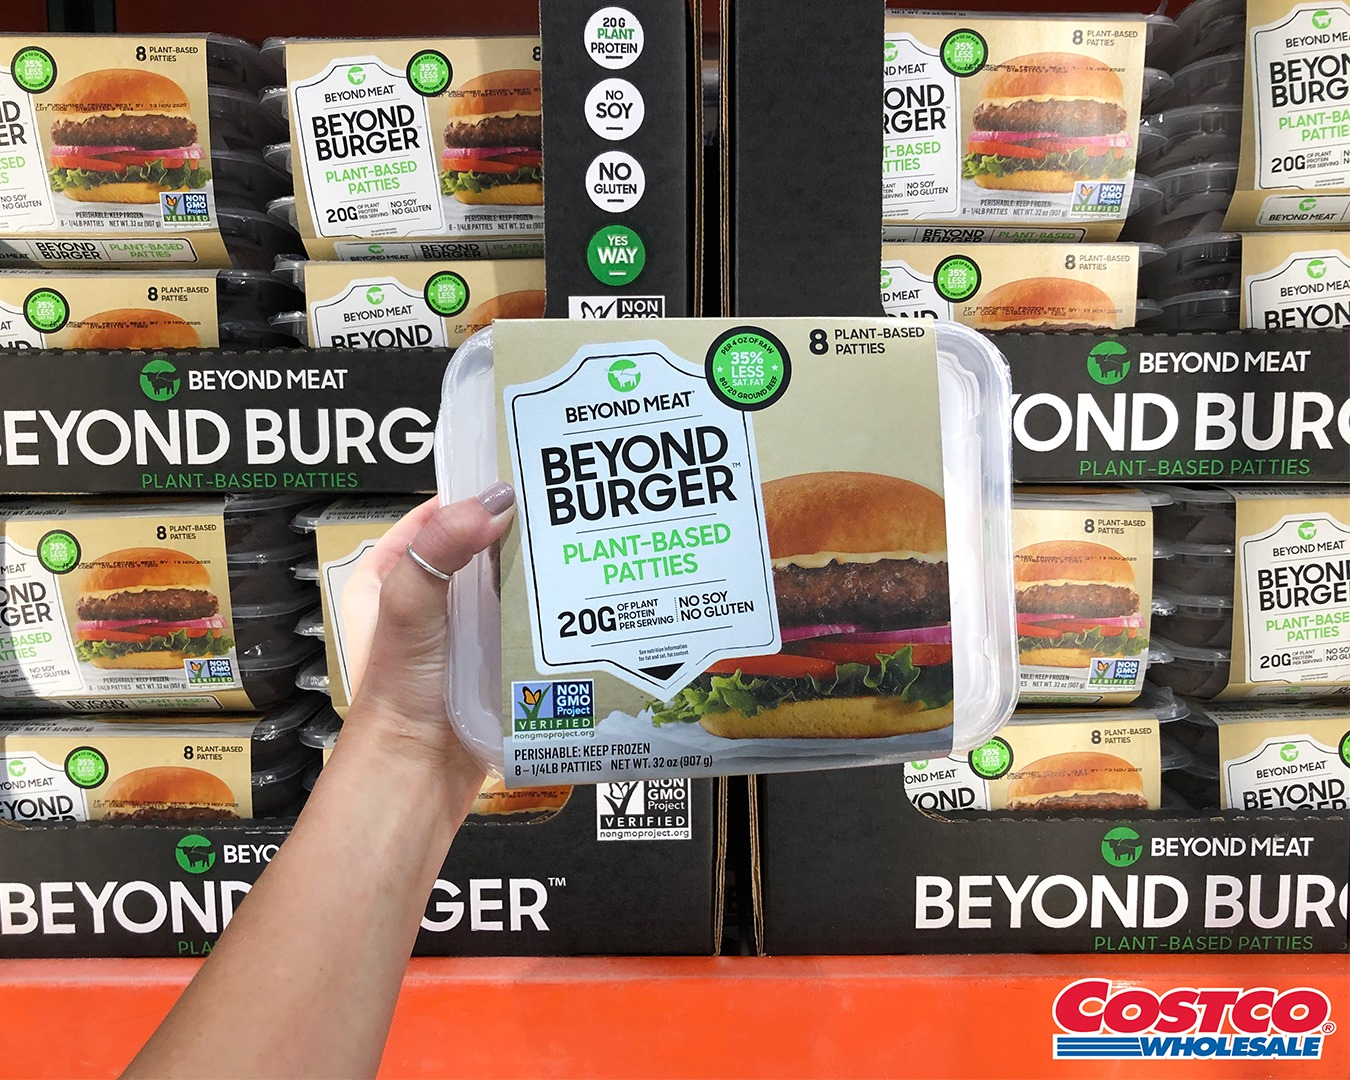 Che cos'è Beyond Meat?